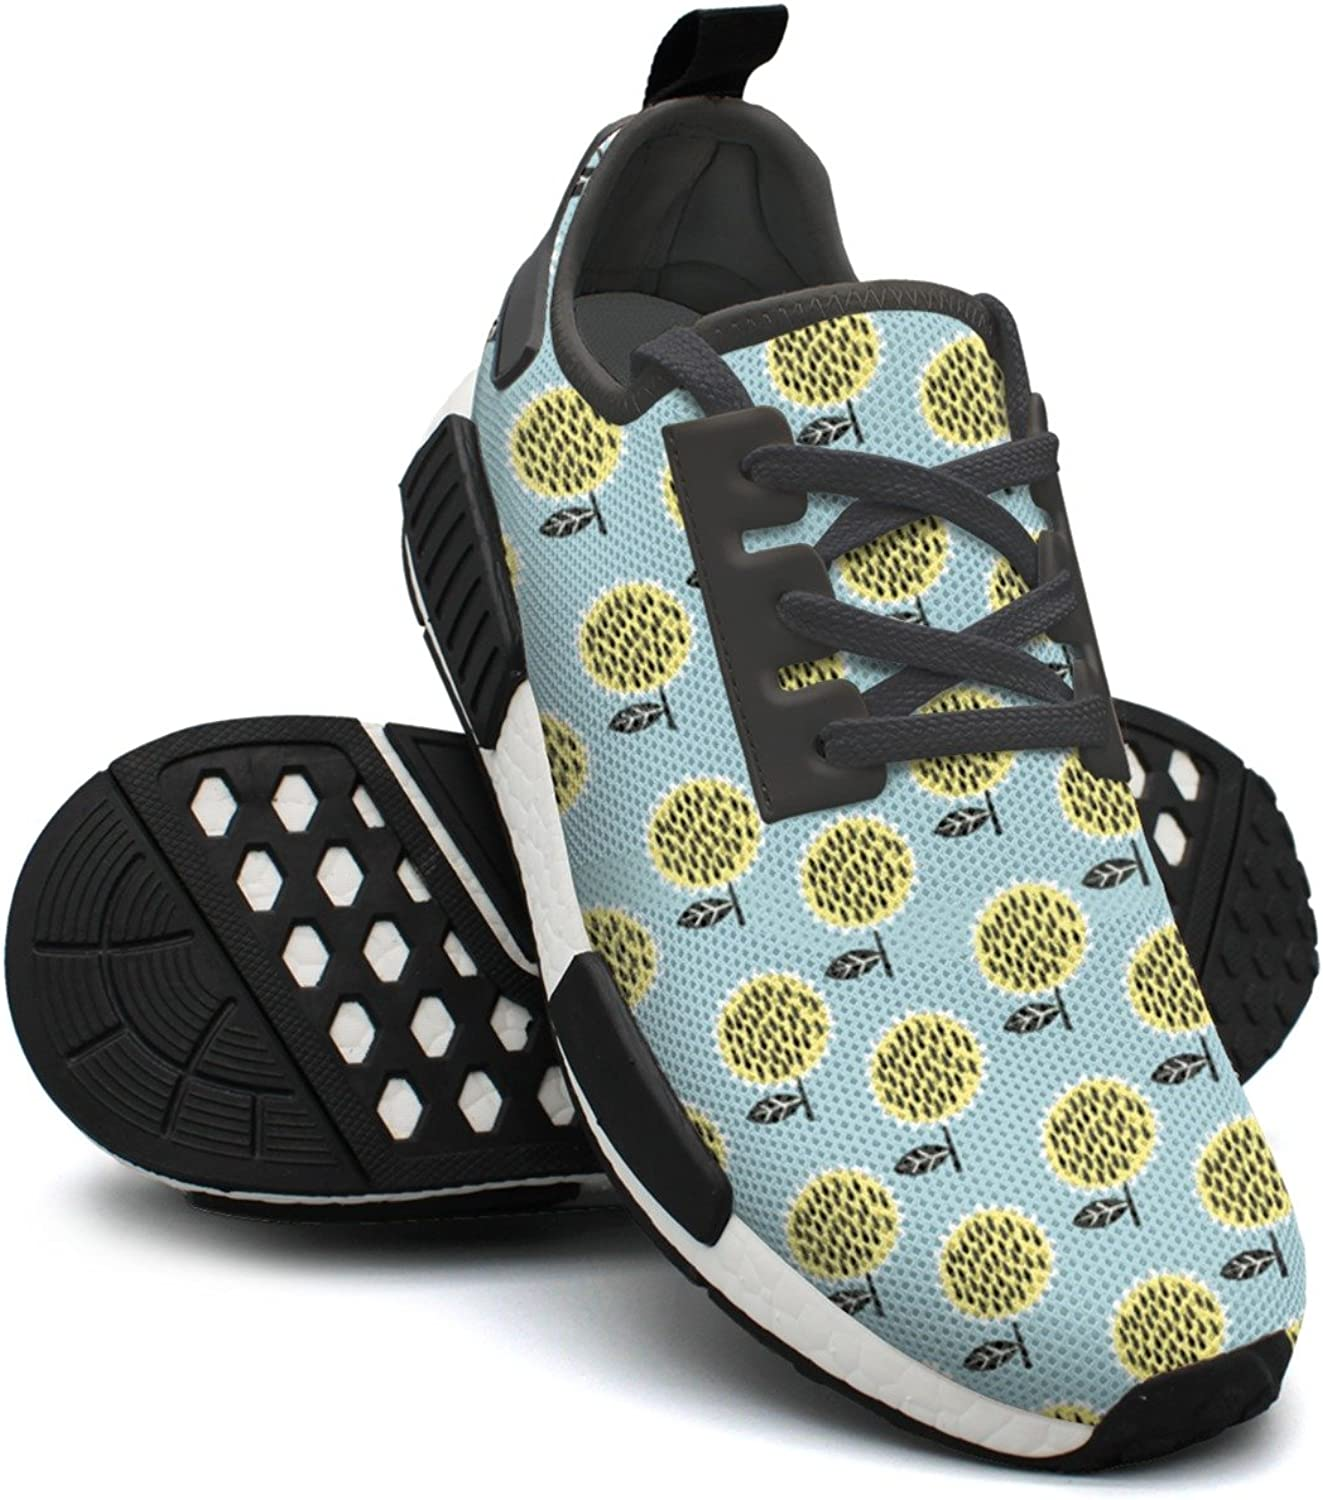 Tiny Sunflower Floral Women's Novelty Lightweight Basketball Sneakers Gym Outdoor Running shoes